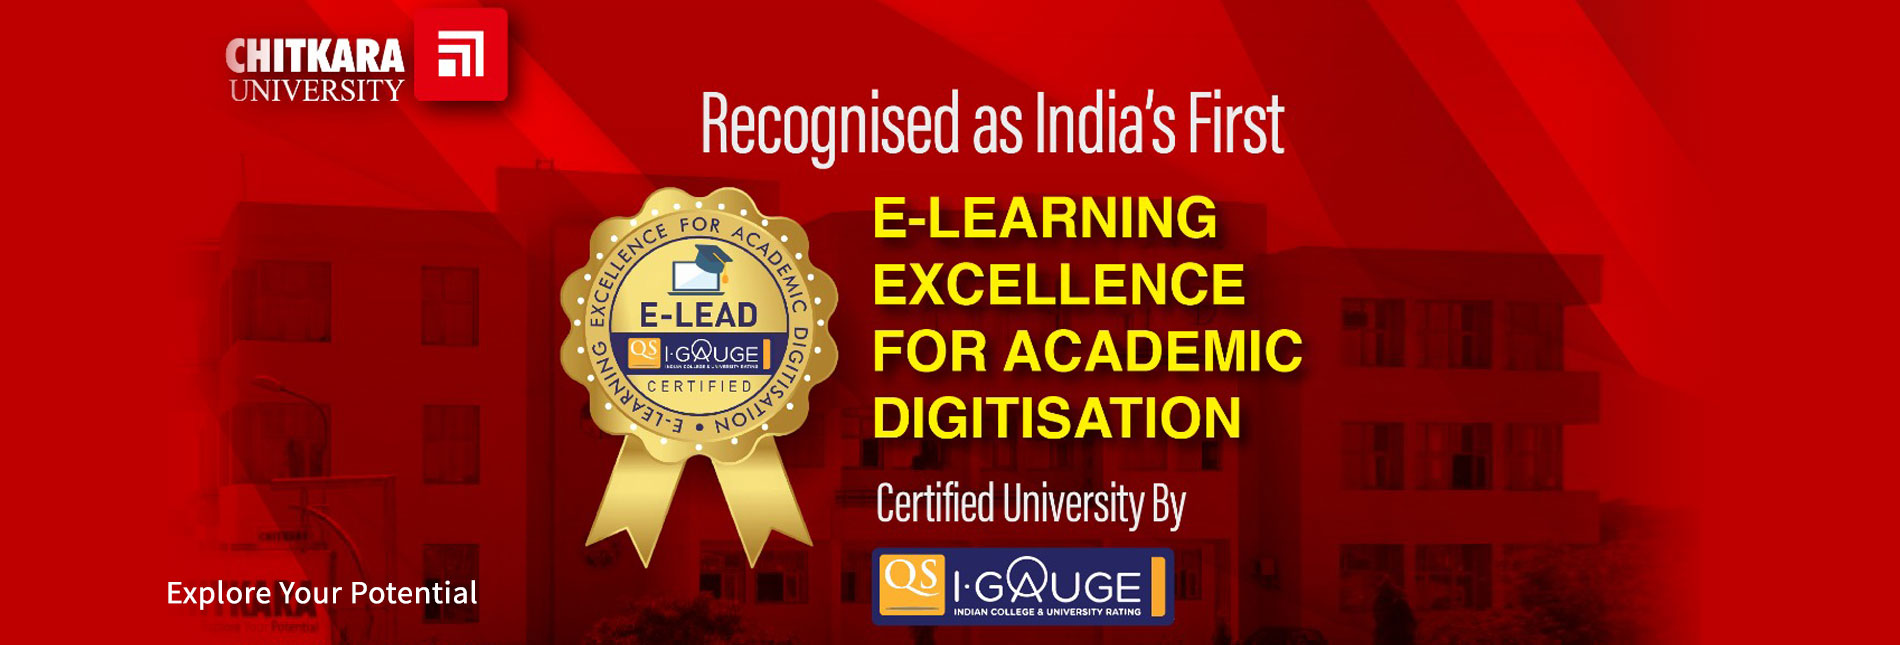 Quacquarelli Symonds recognises Chitkara University as first Indian University for E-Learning Excellence (E-Lead) Certification